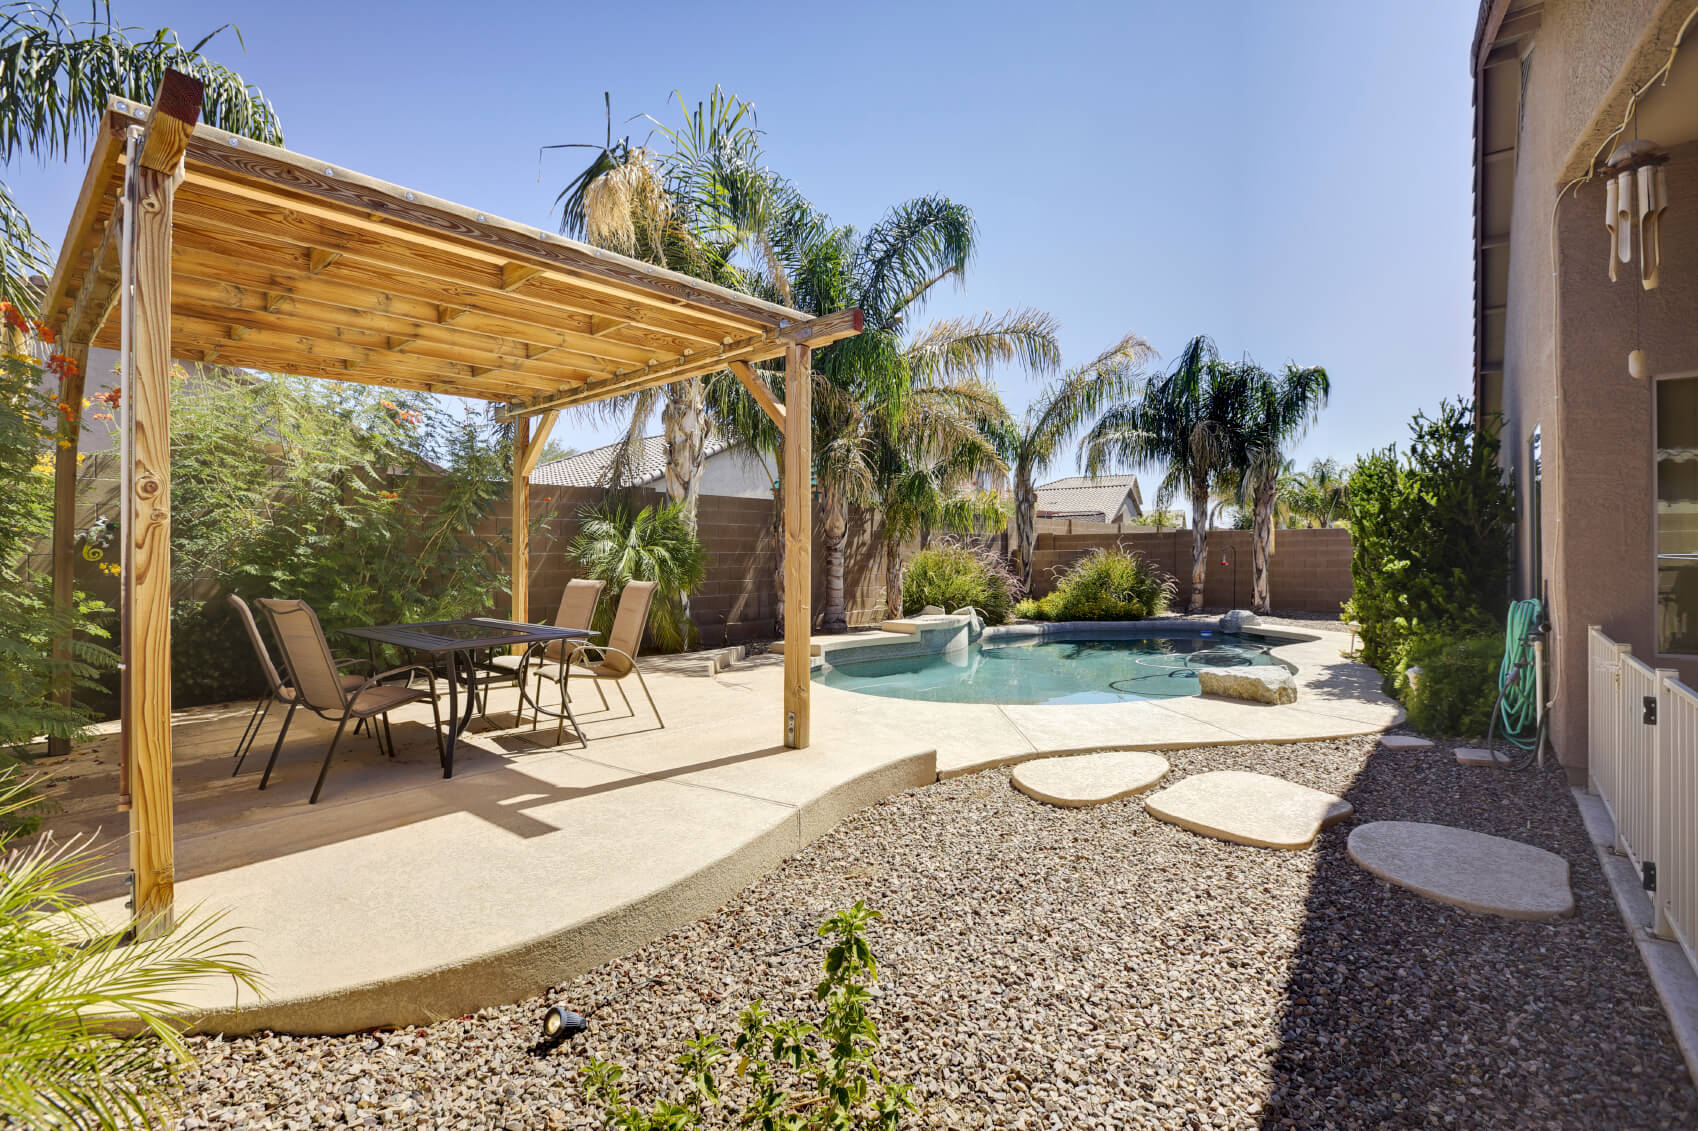 Pergola Designs Best Patios In Phoenix Pergola Designs For Shade More New Image